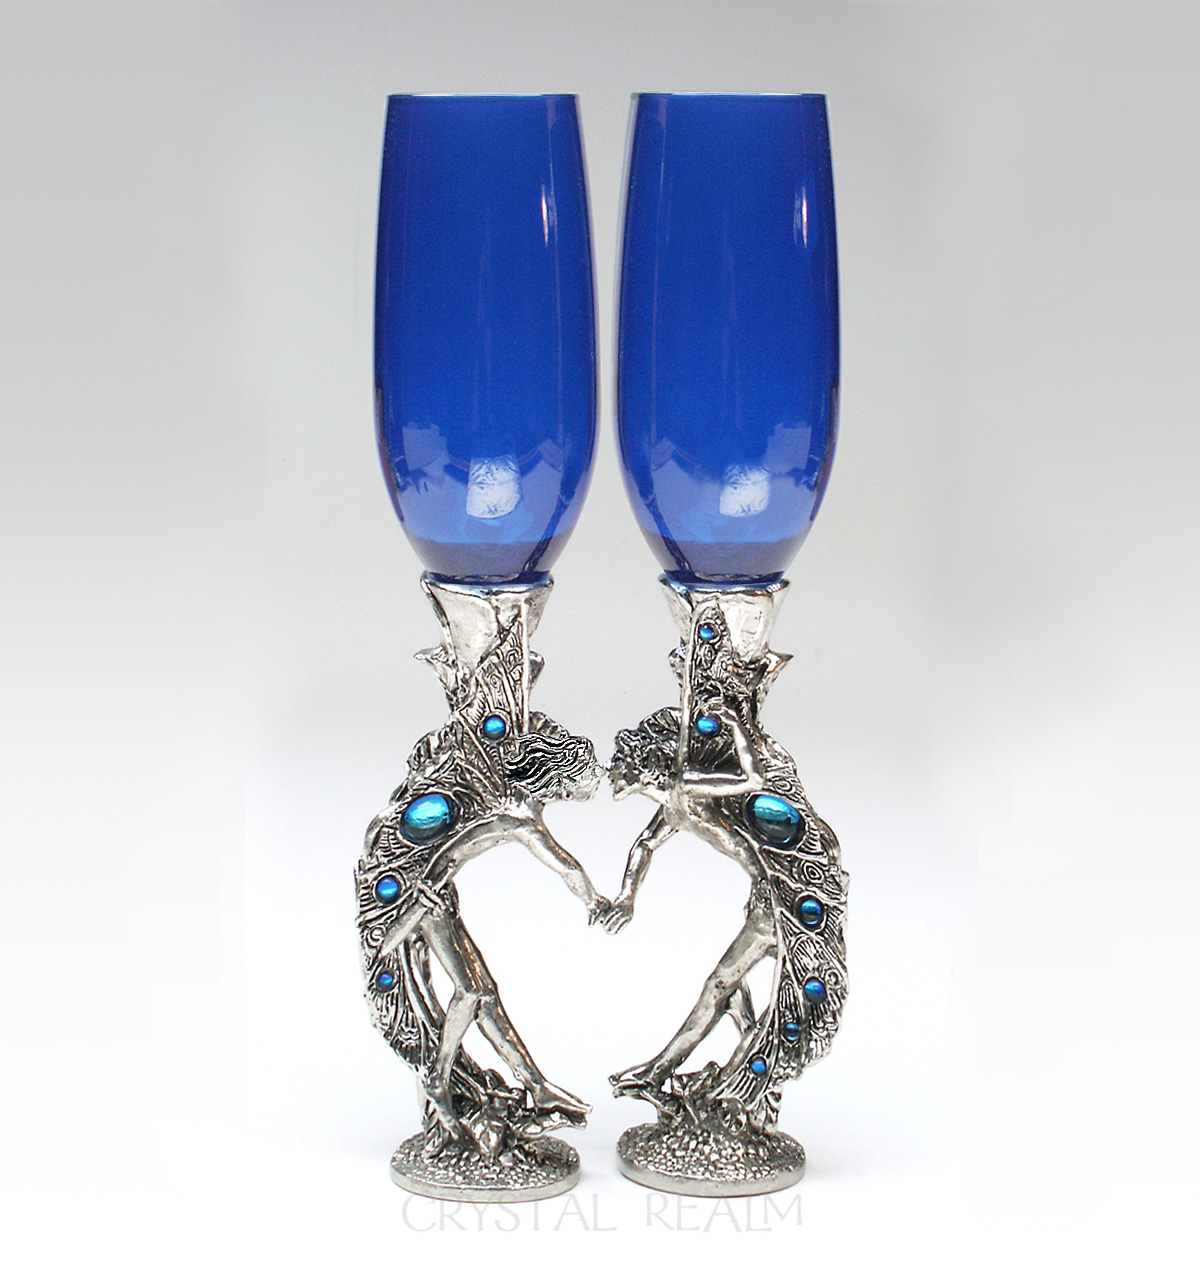 Girl-boy blue champagne glasses with fairies in a heart shape